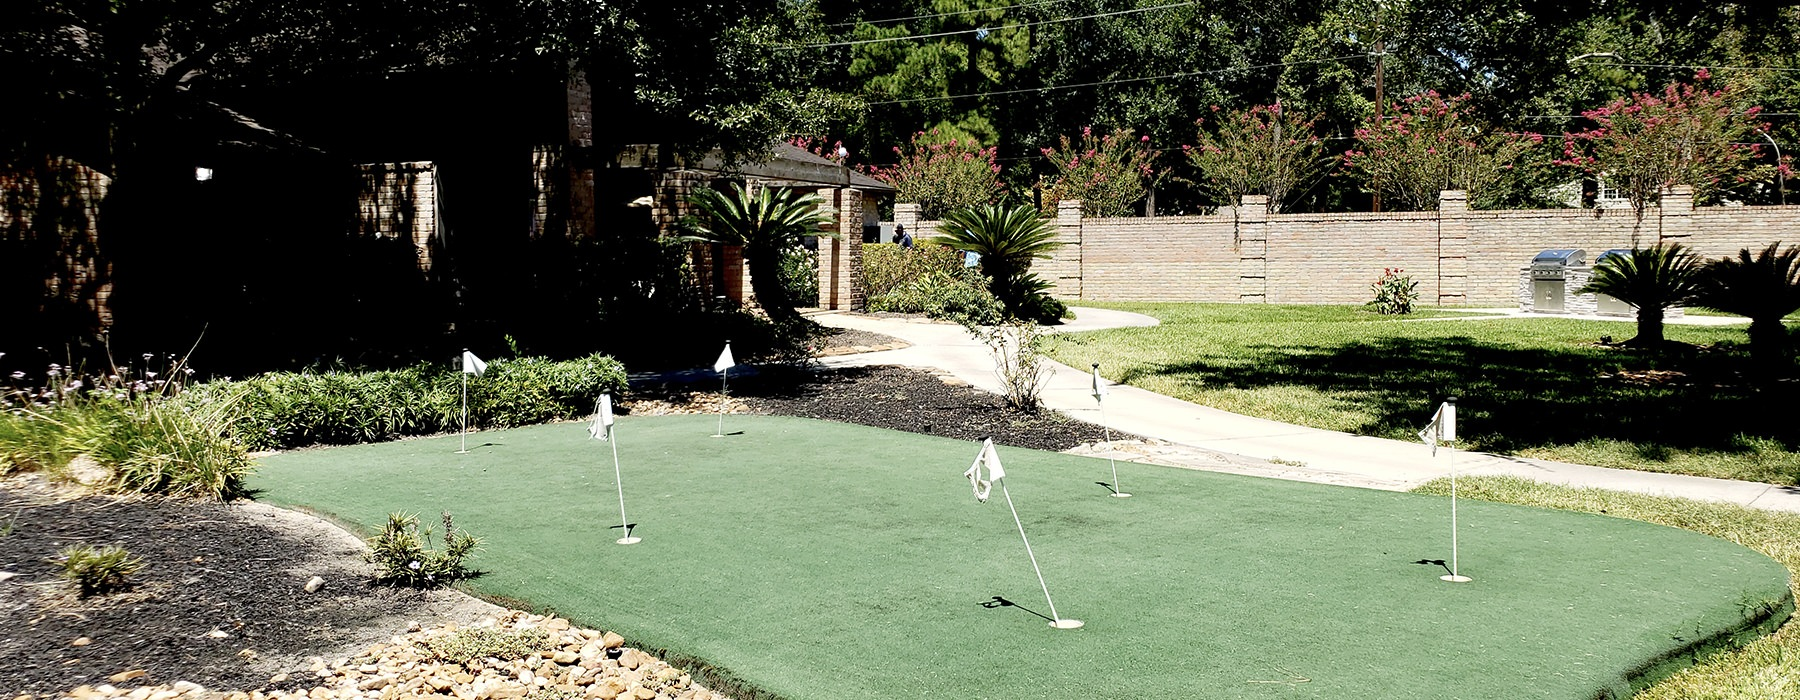 golfing area to practice putting